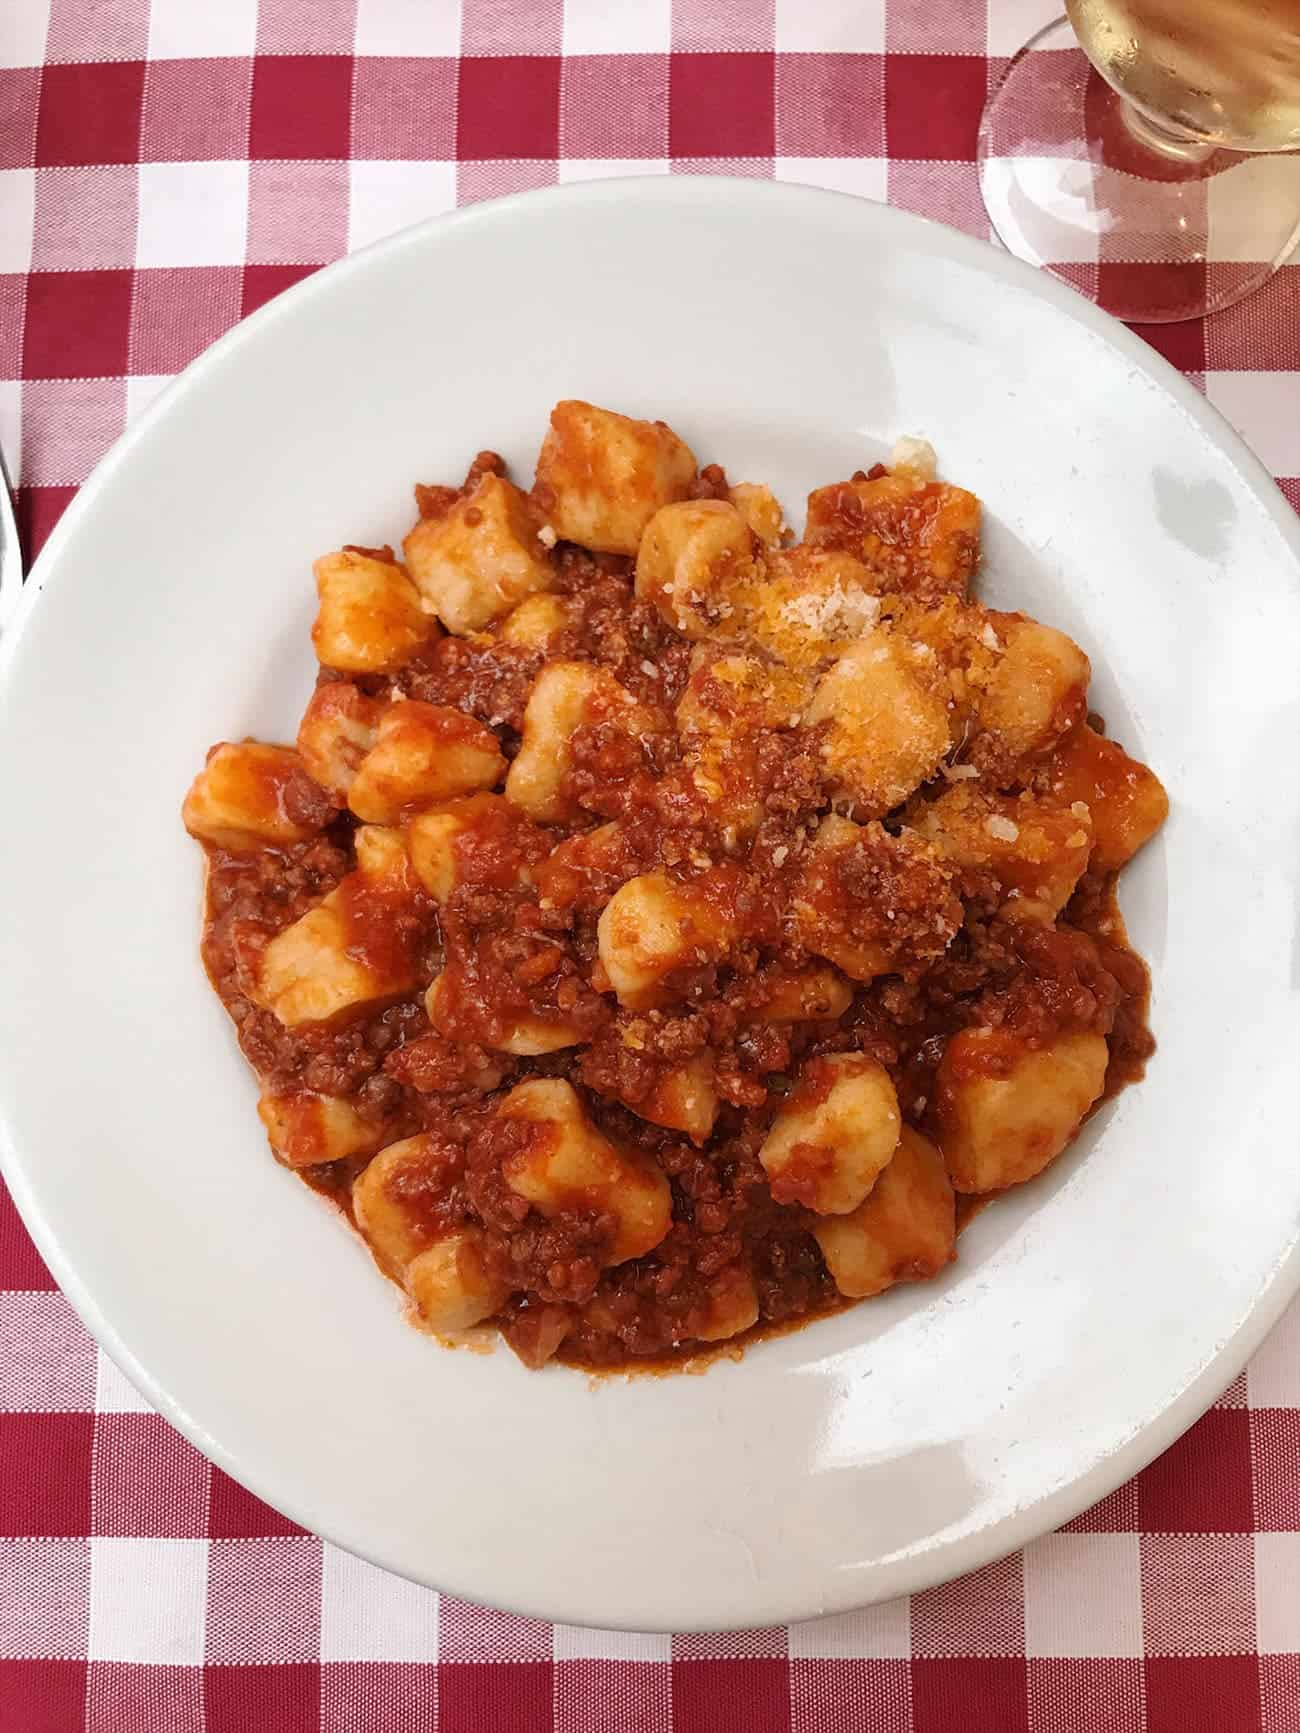 What to Eat in Rome: Recommendations for Pizza, Pasta & Gelato | Gnocchi al ragu in Rome